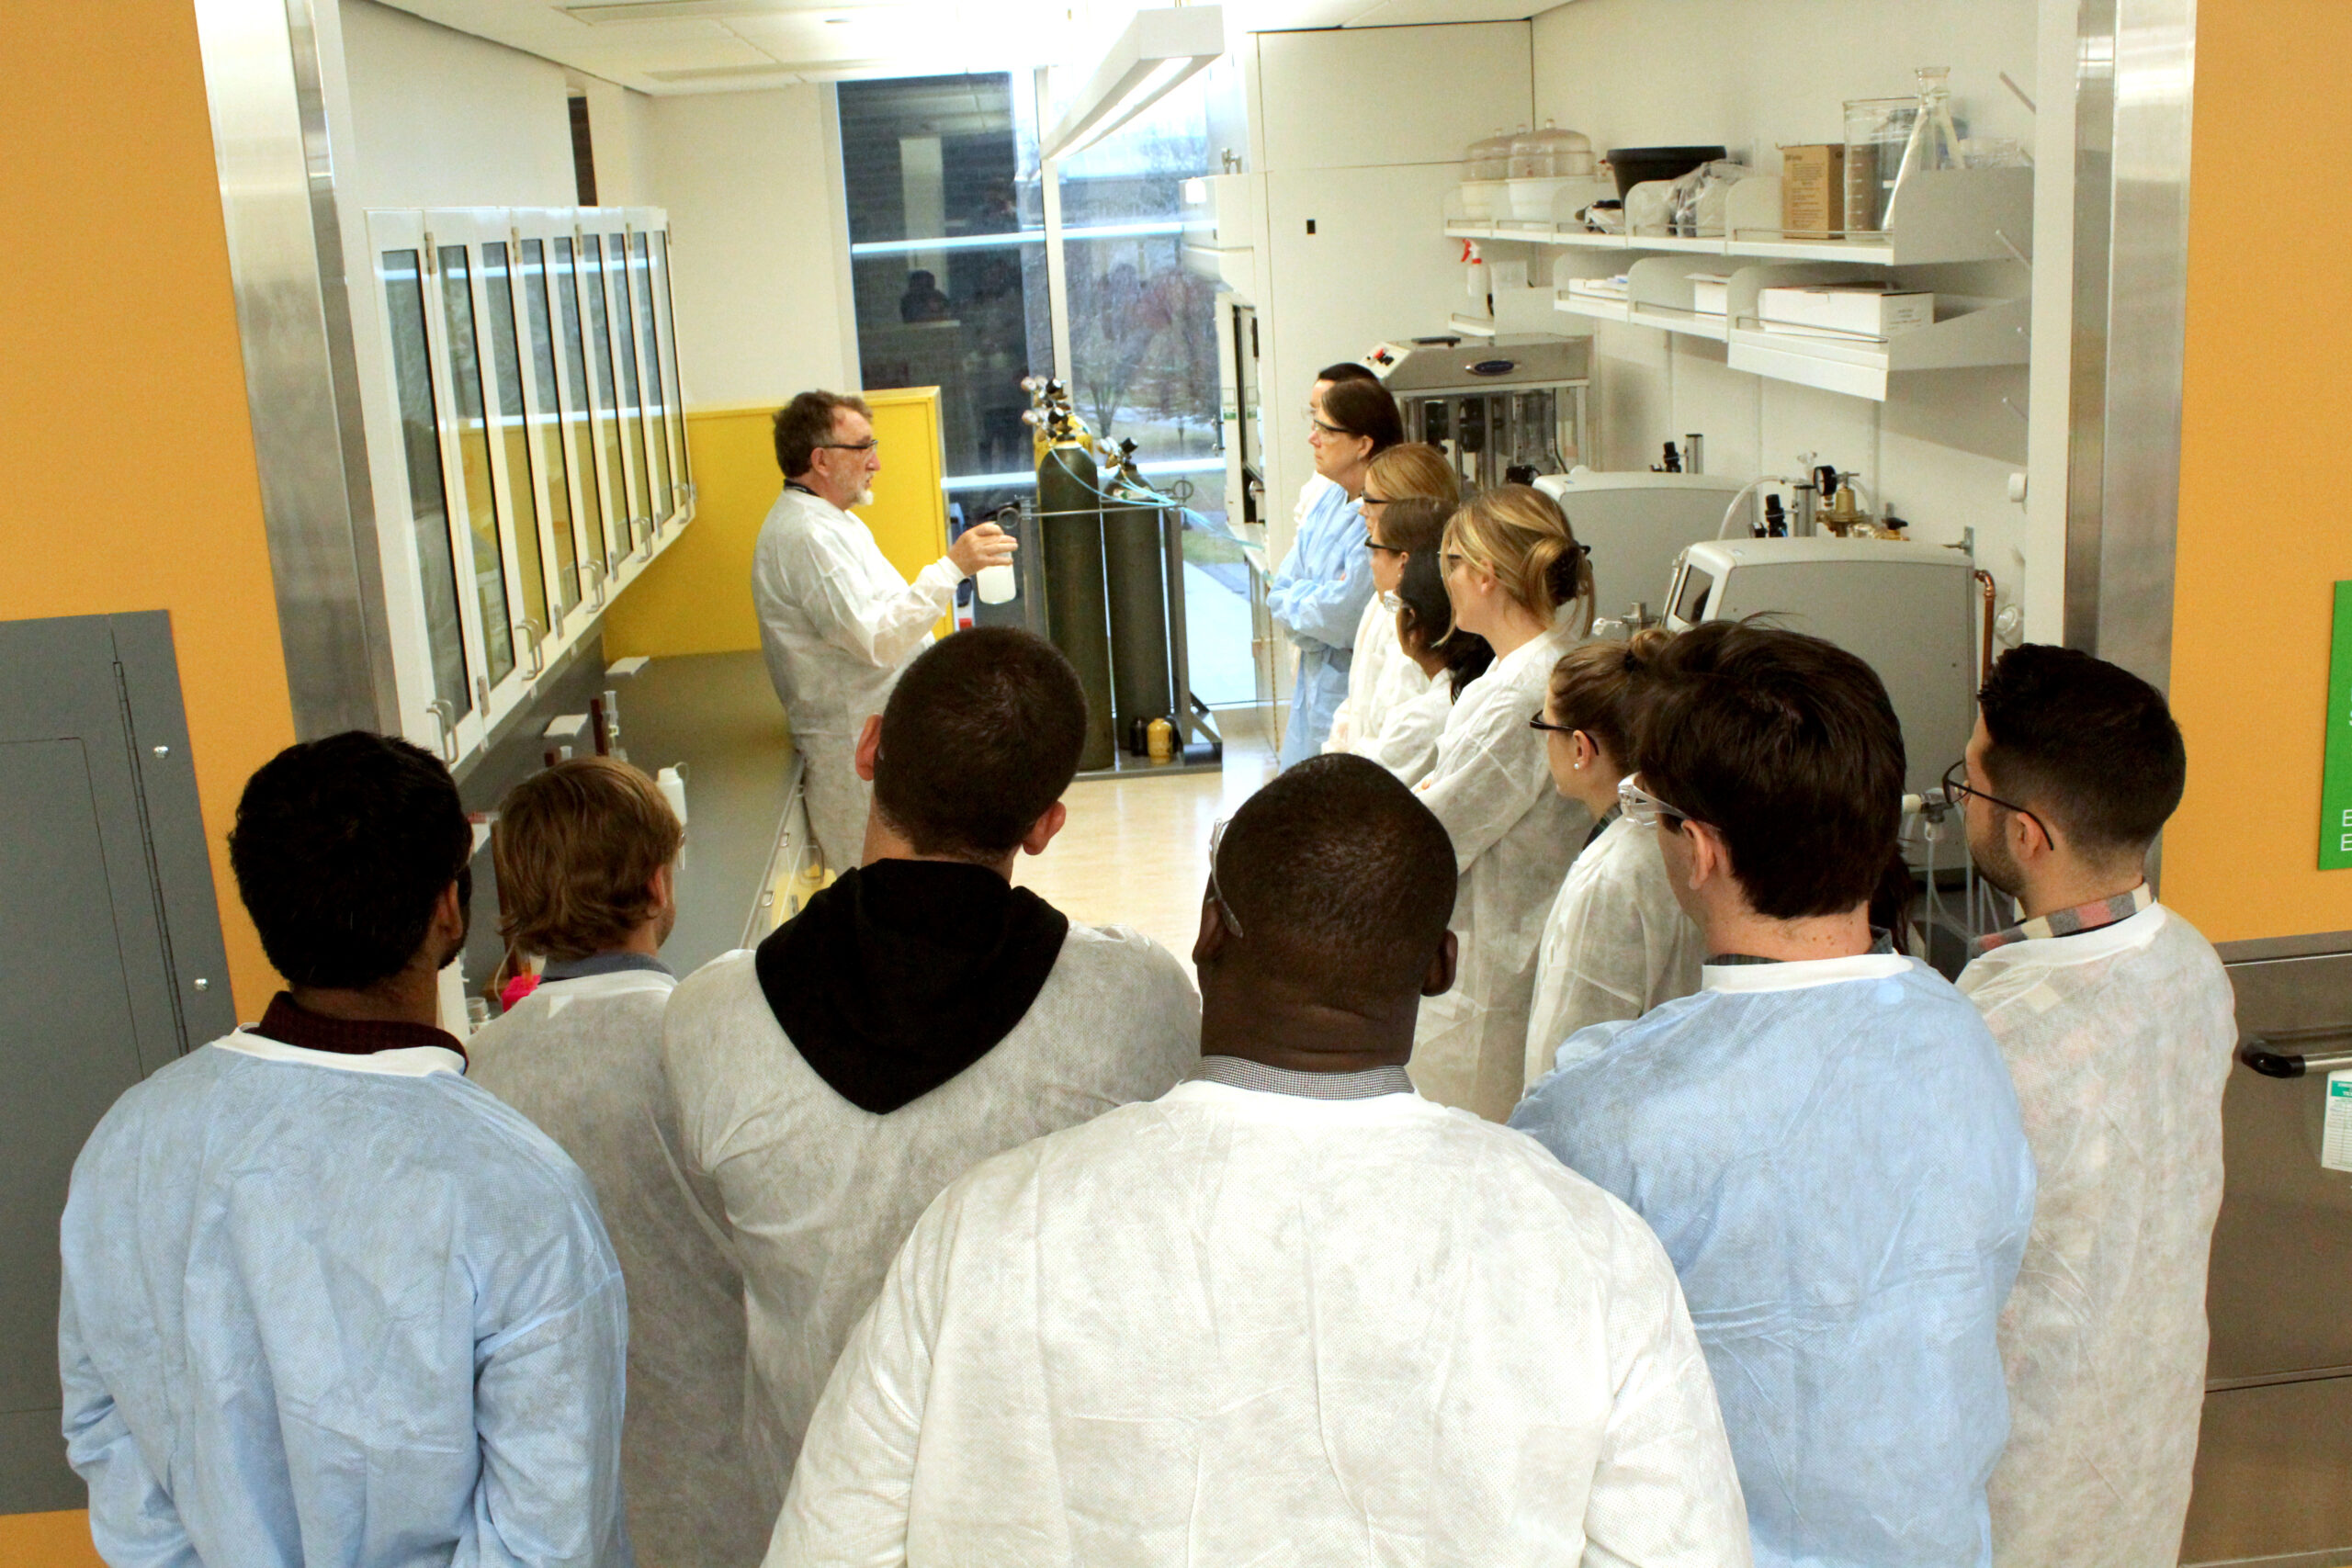 Malcolm Pluskcal leads Amgen employees through a training session